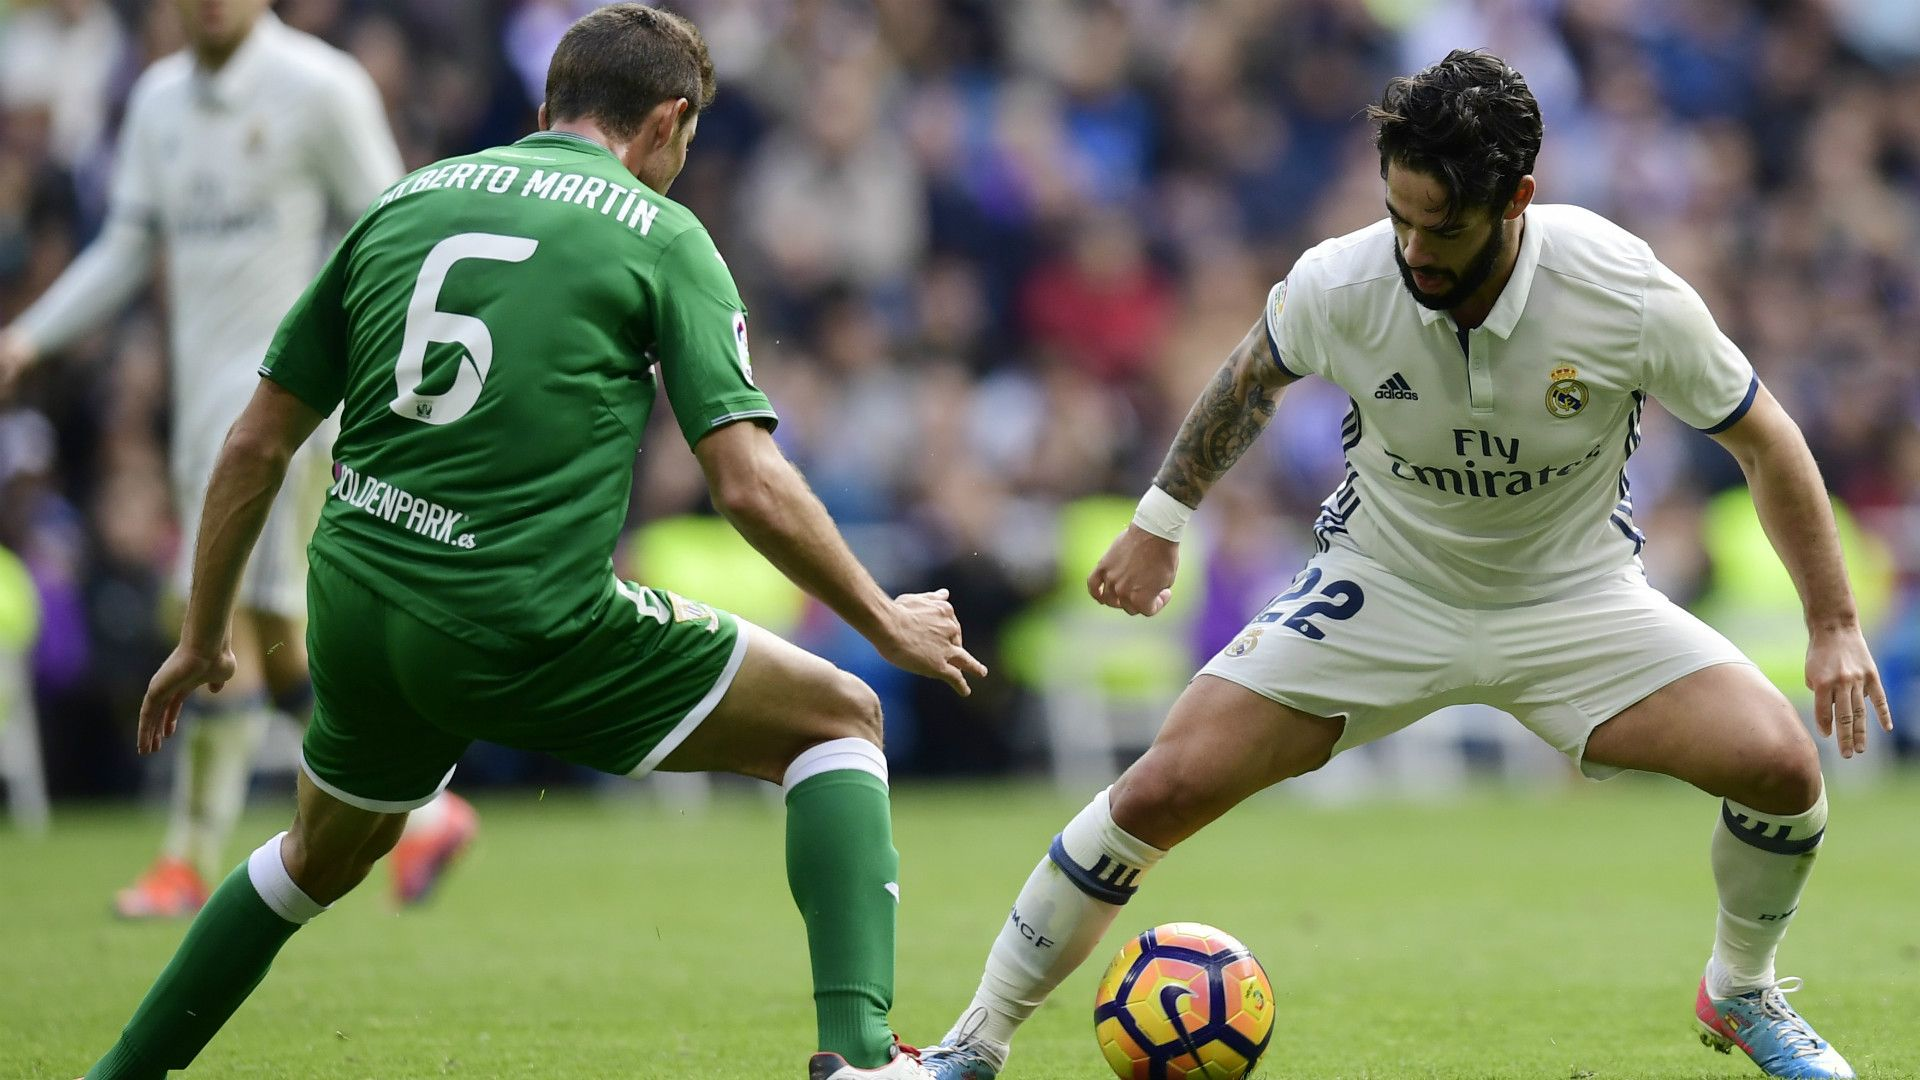 Pin By Matthew Smith On Real Madrid 13x Champions Of Europe Real Madrid Leganes Madrid